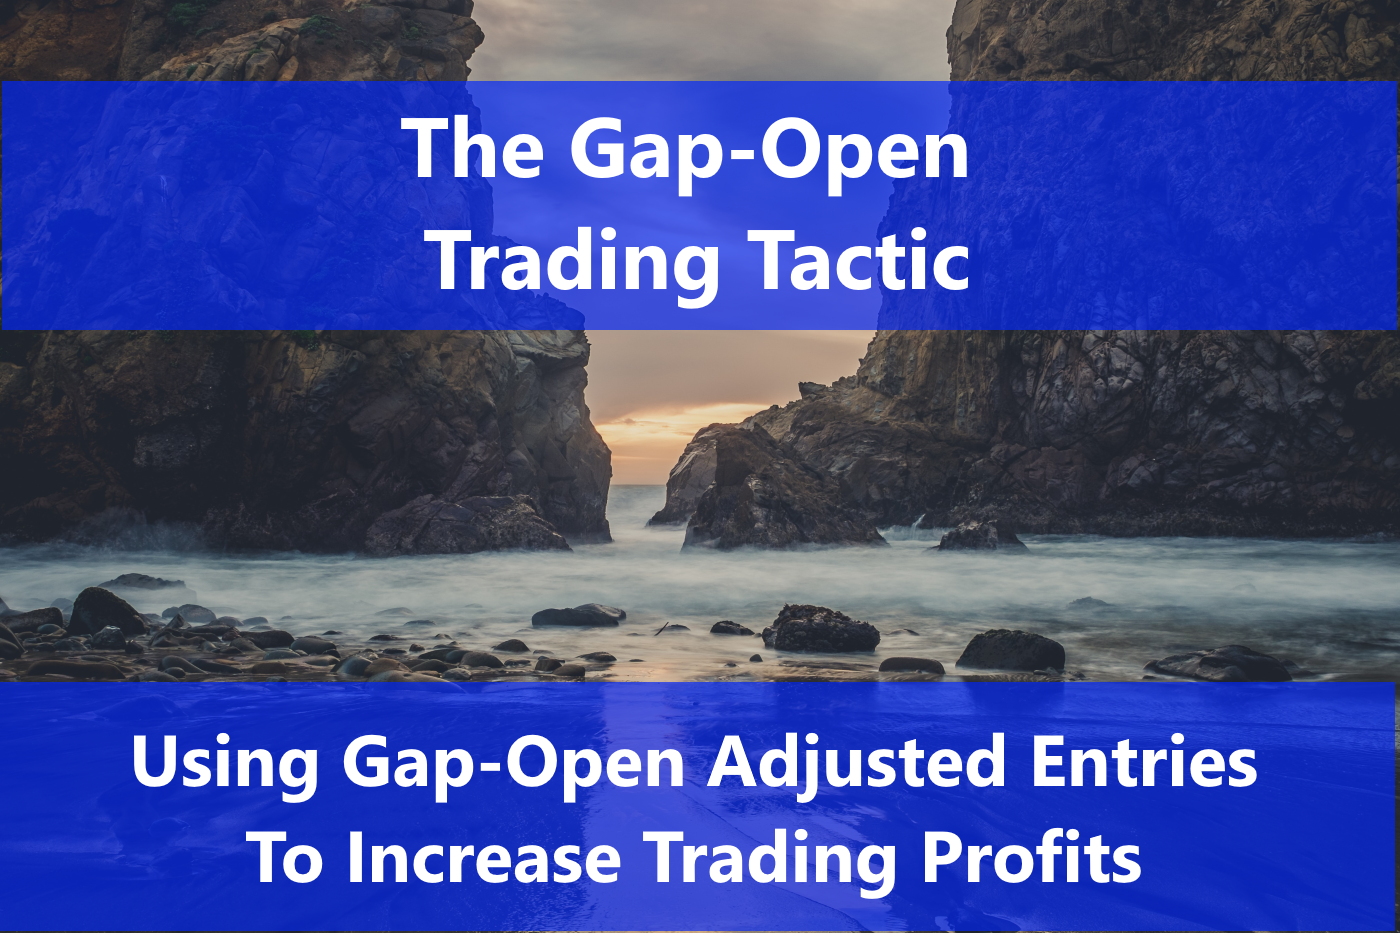 Learn to use Gap-Open tactic adjusted entries to increase online stock trading profits.